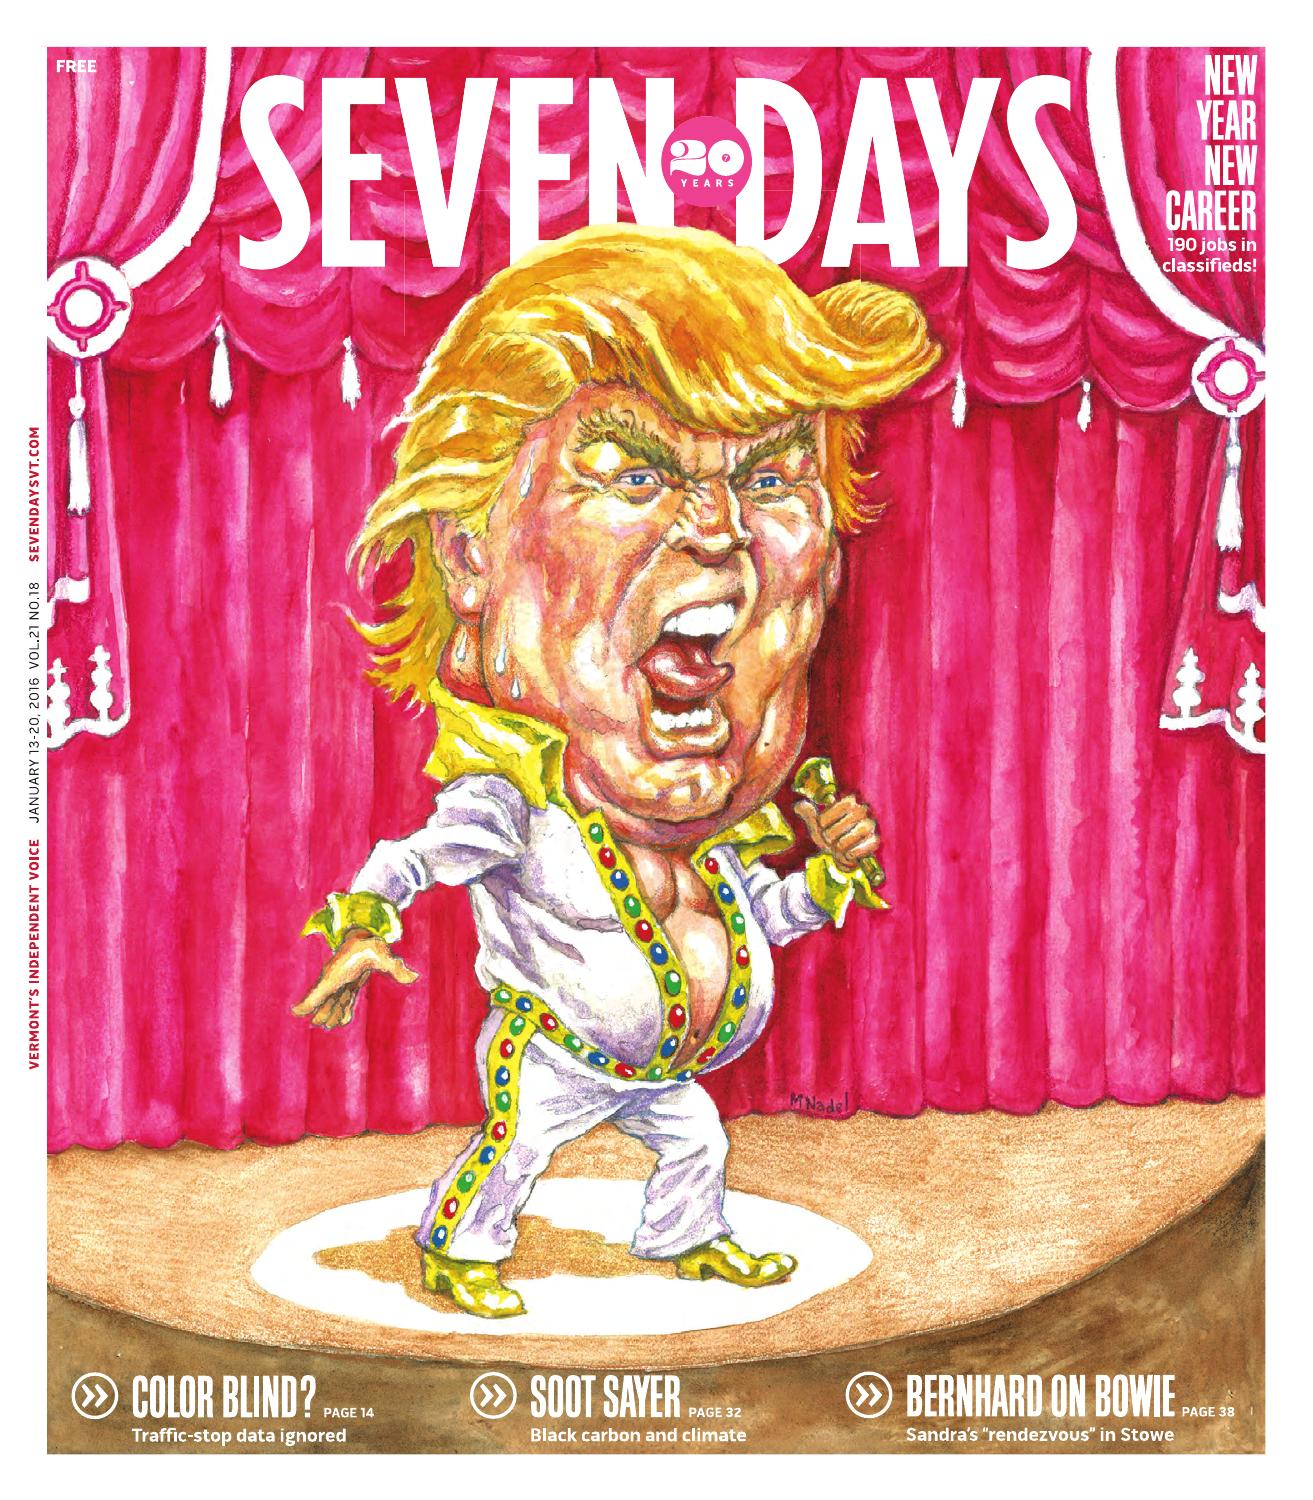 ccc29679db05 Seven Days, January 13, 2016 by Seven Days - issuu